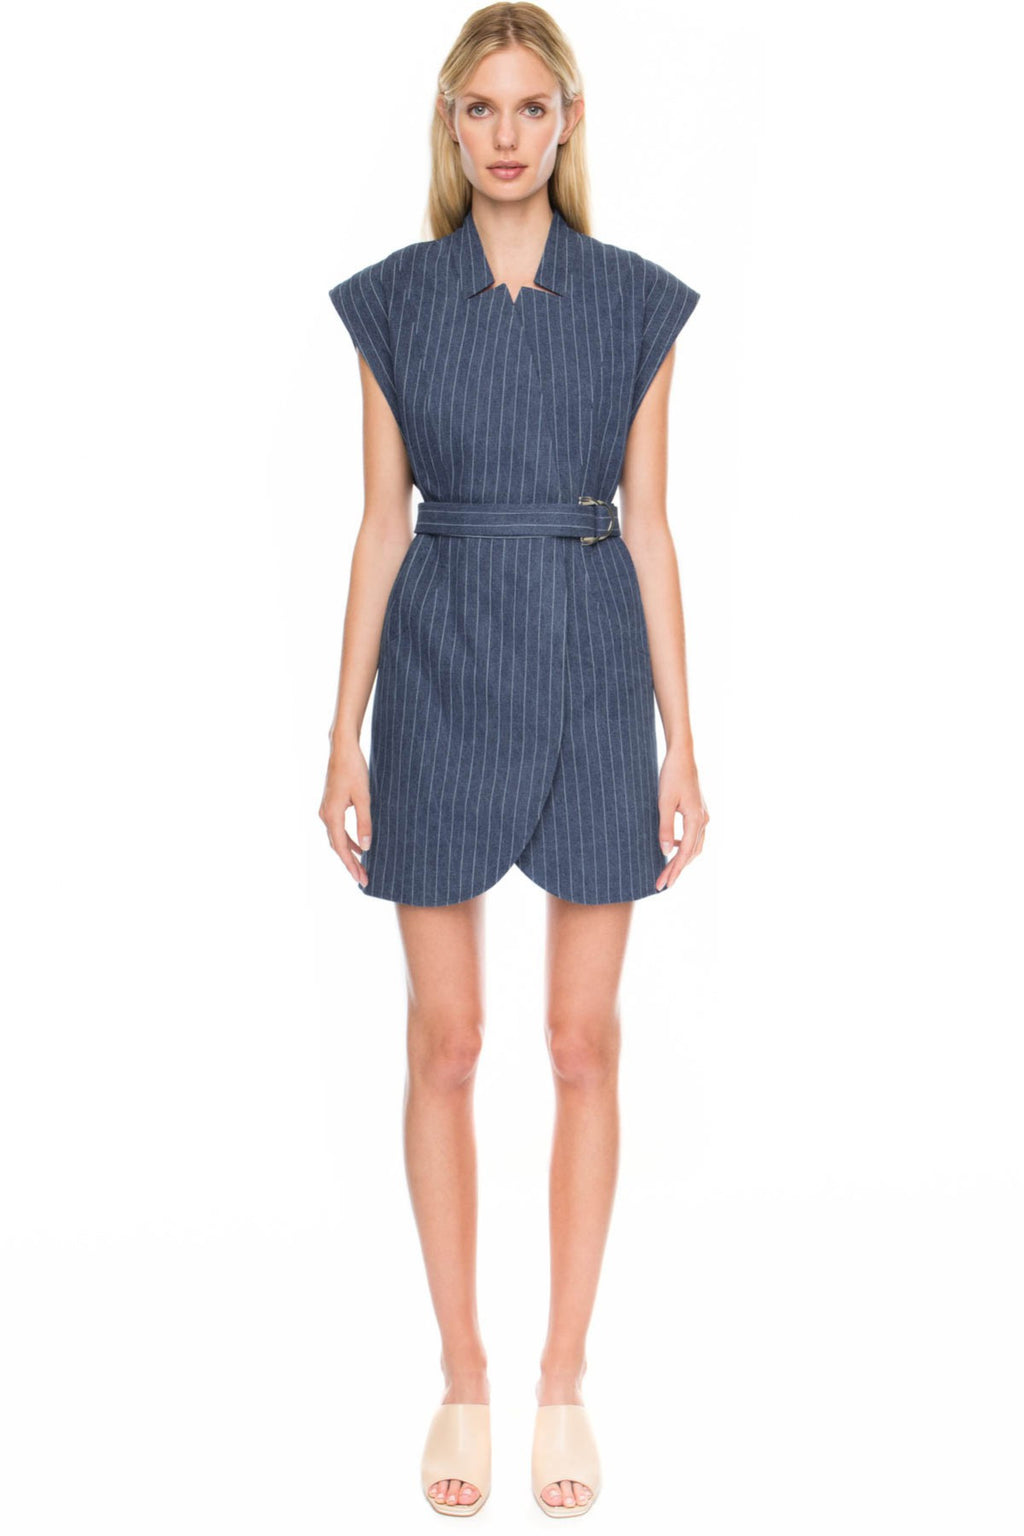 STAY COOL PINSTRIPE DRESS